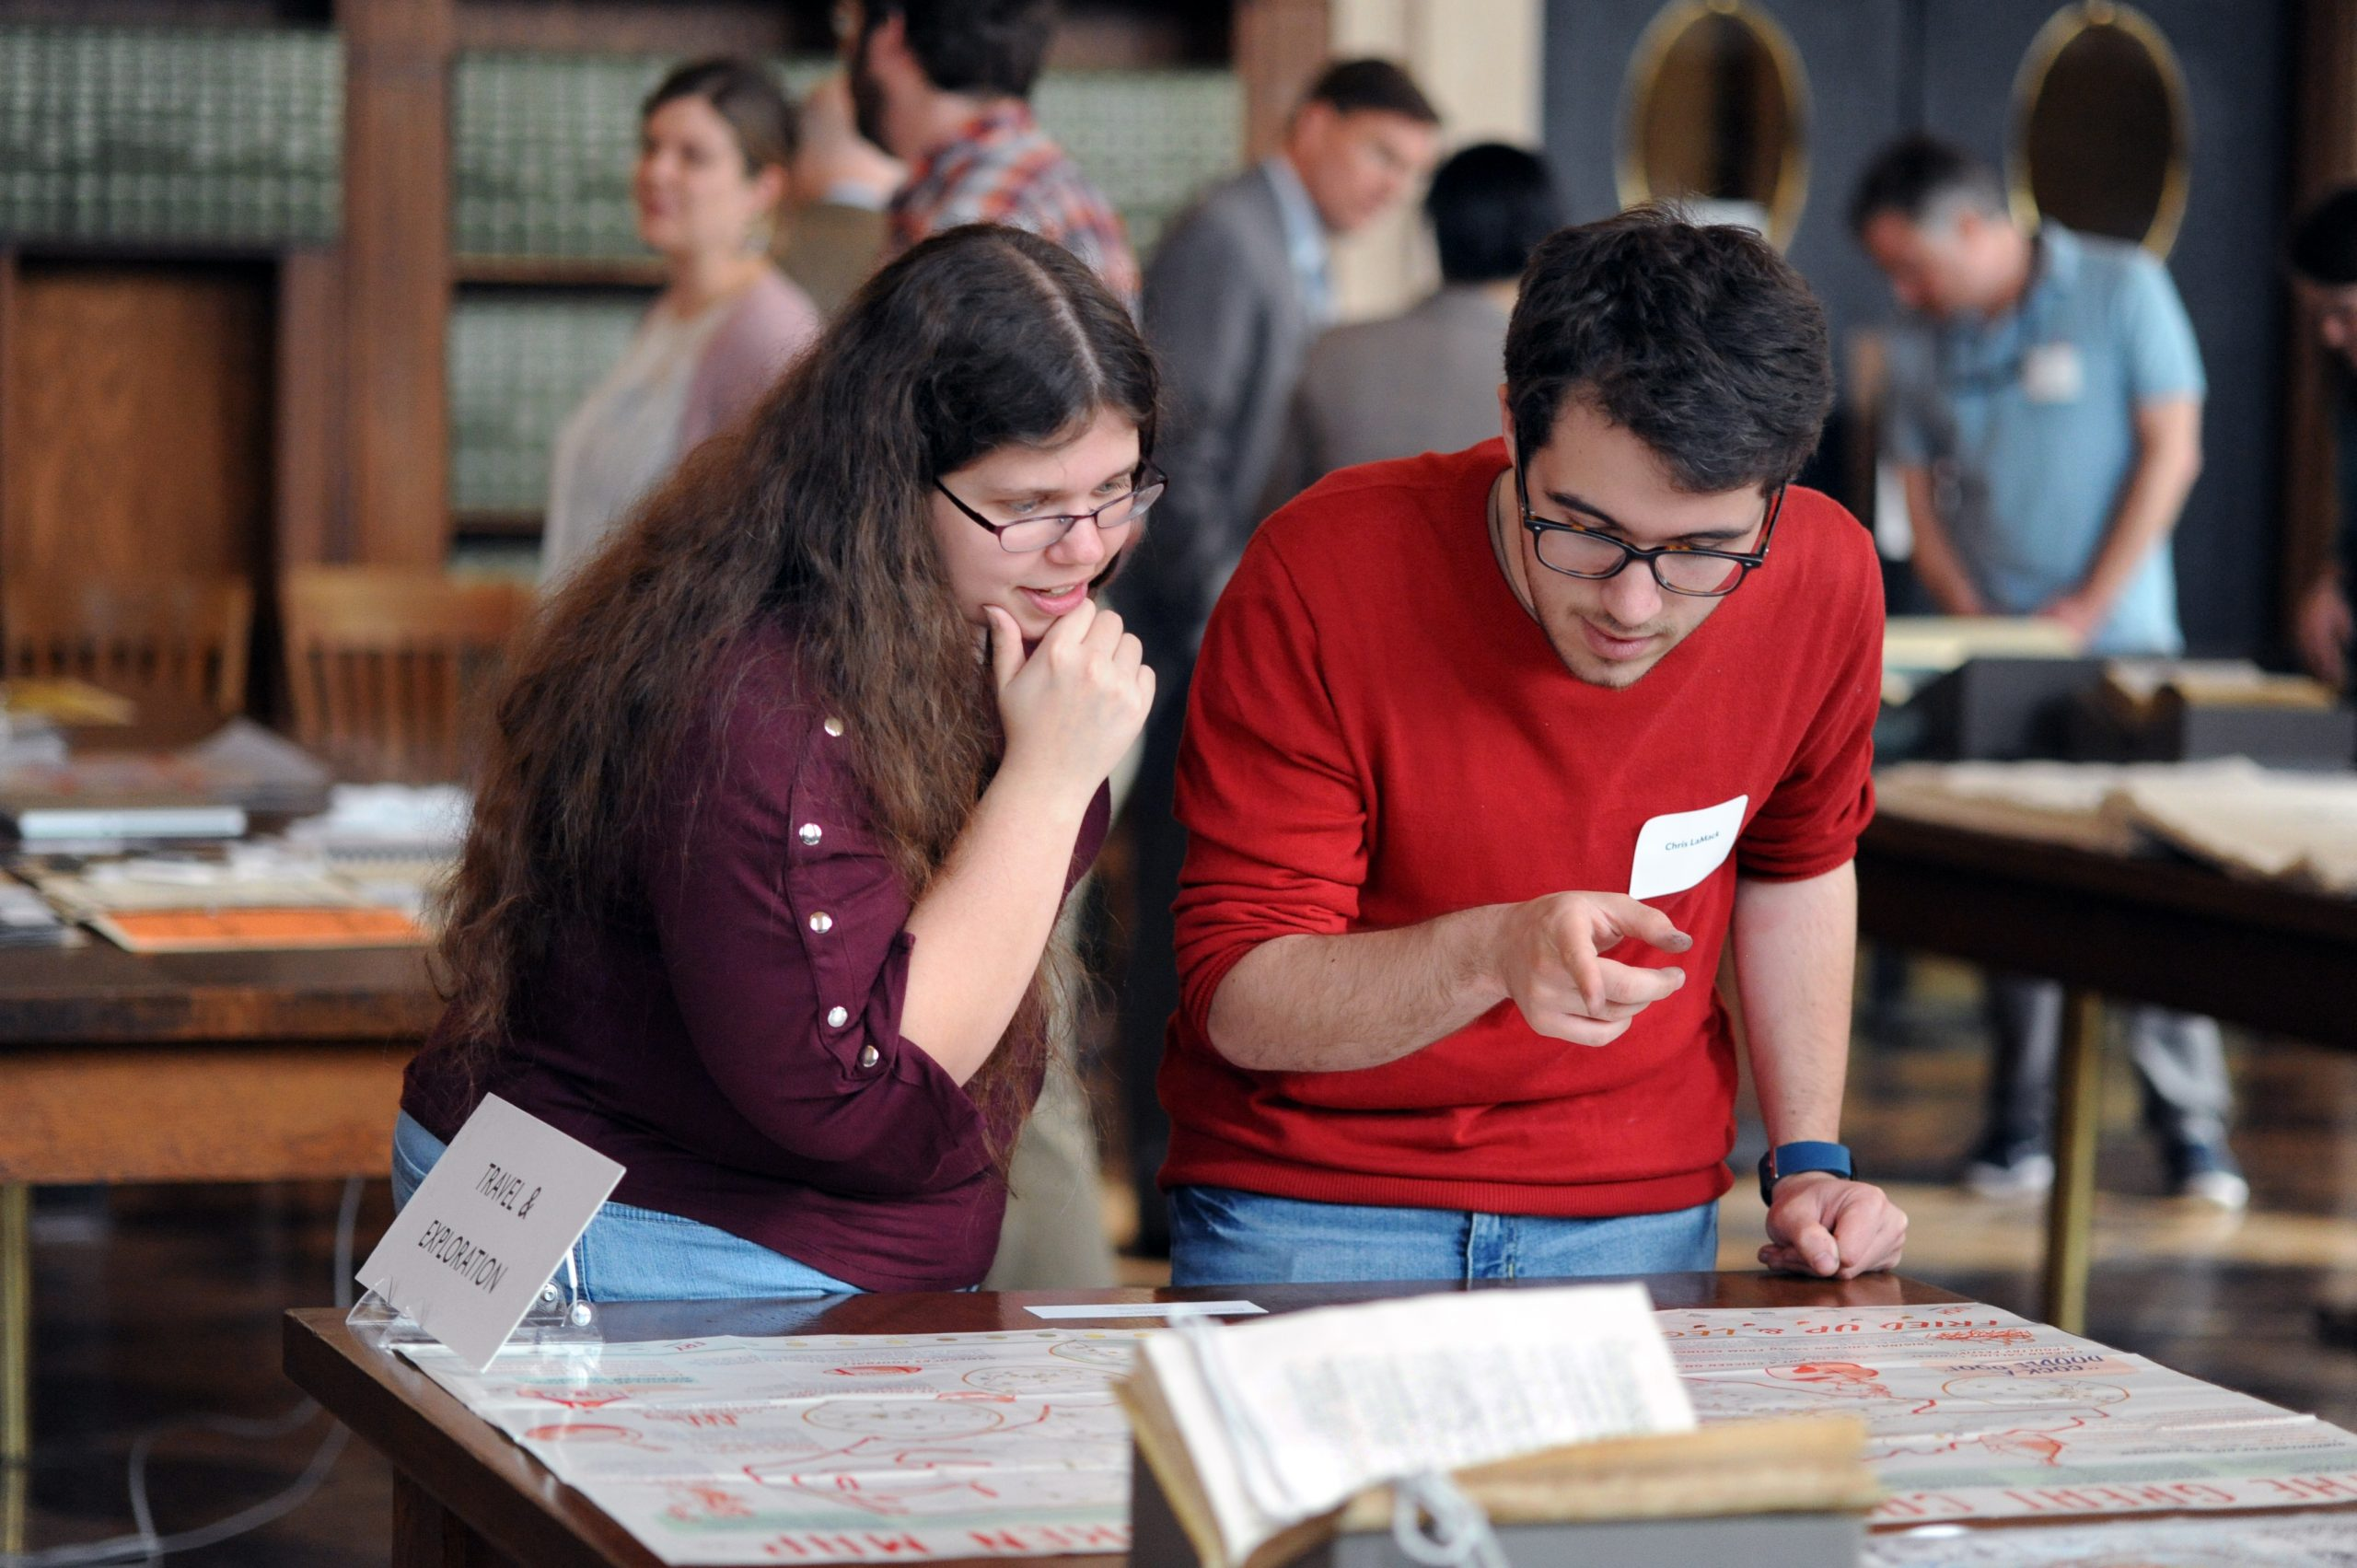 Student visitors examine The Great Carolina Fried Chicken Map